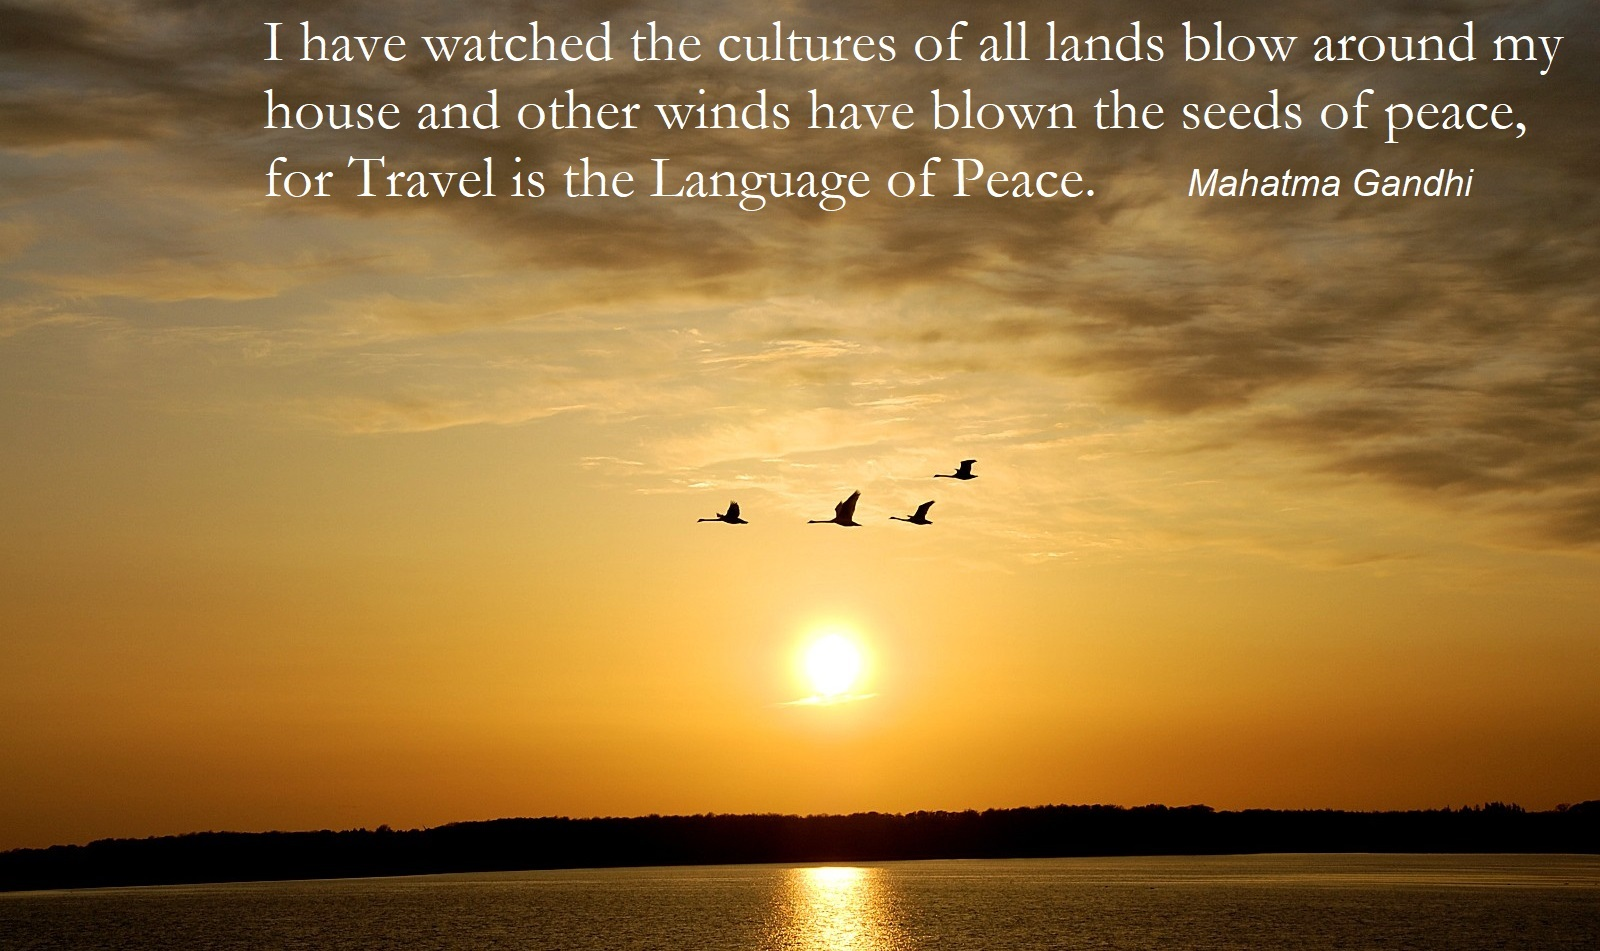 GANHDI SAID:  I HAVE WATCHED THE CULTURES OF ALL LANDS BLOW AROUND MY HOUSE AND OTHER WINDS HAVE BLOWN THE SEEDS OF PEACE FOR TRAVEL IS THE LANGUAGE OF PEACE . IMAGE:  THE INTERNATIONAL INSTITUTE FOR PEACE THROUGH TRAVEL